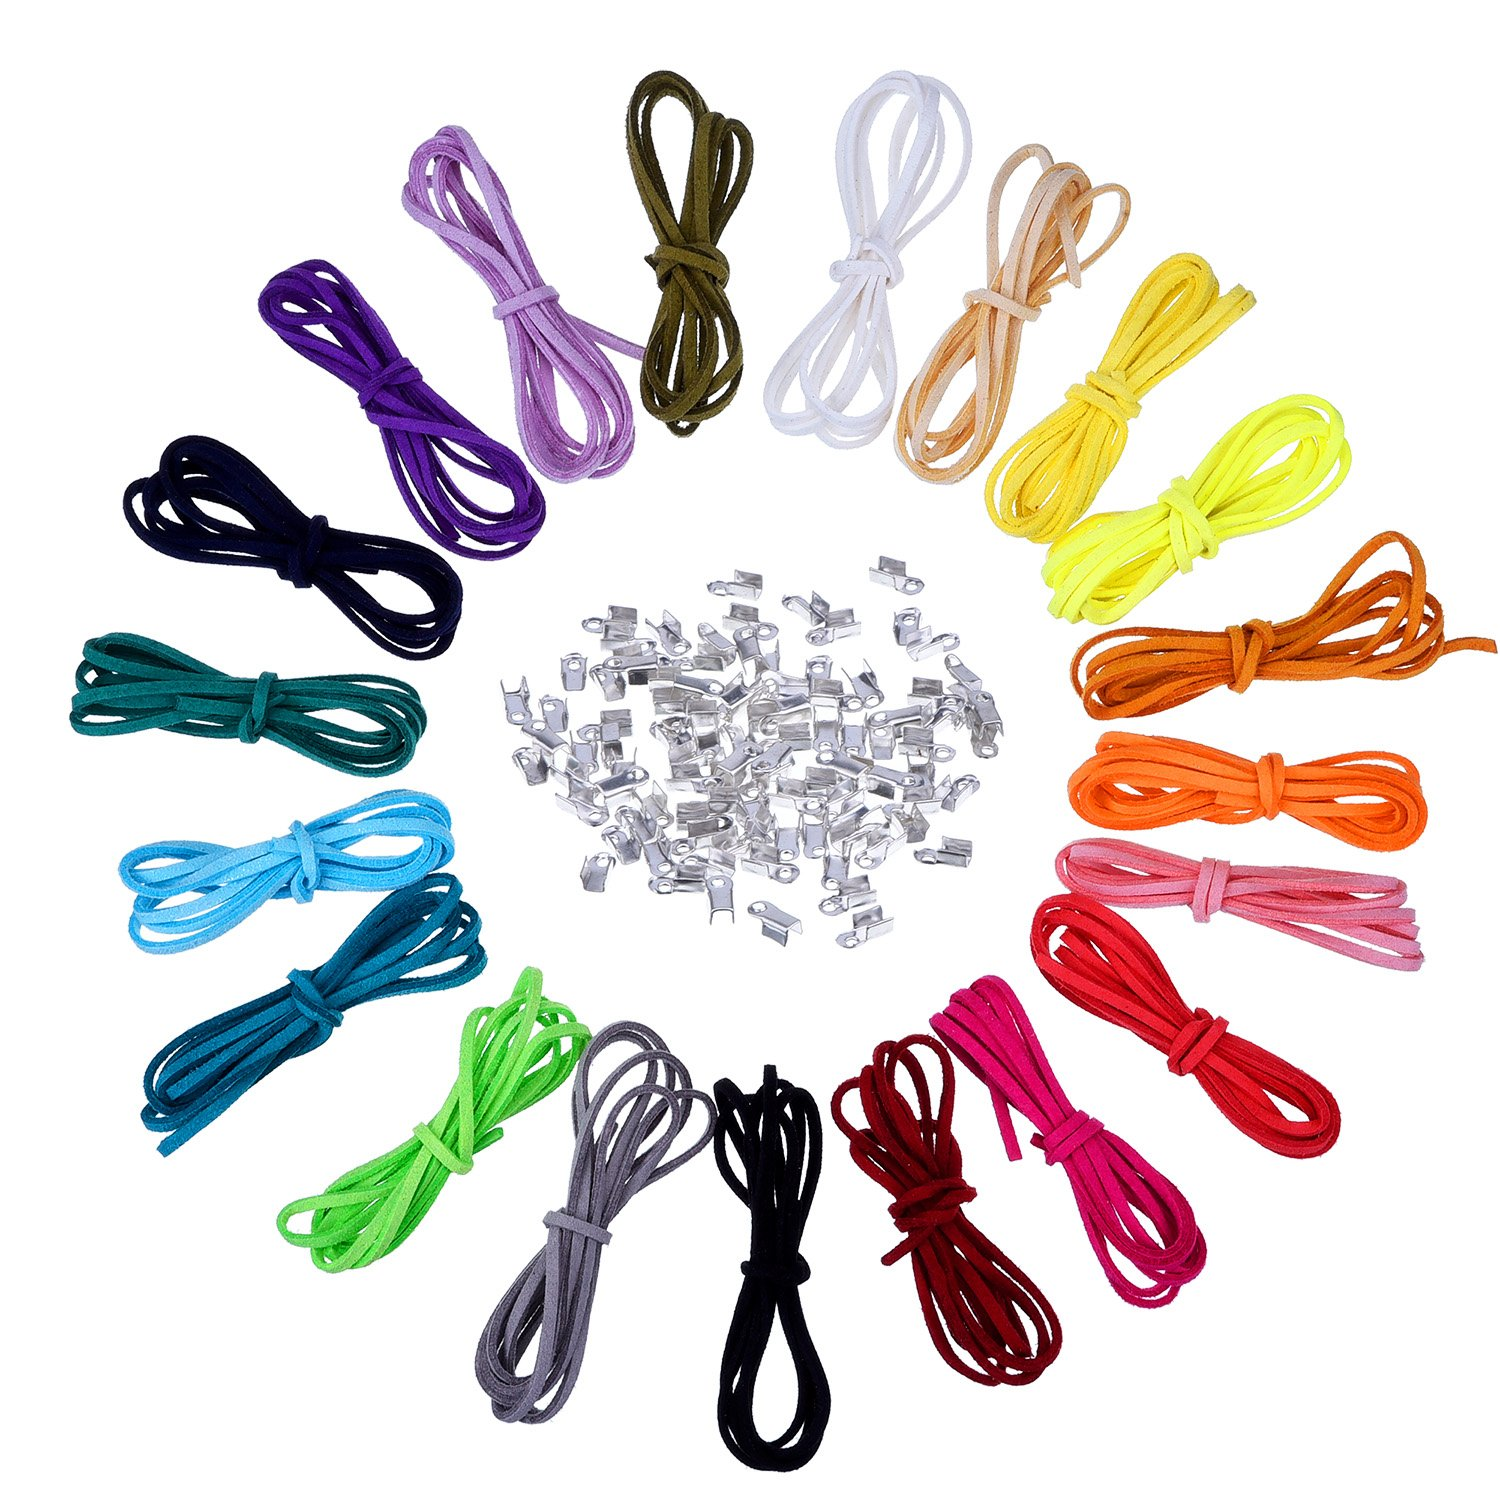 3 mm Leather Cord Faux Suede String Threads with 100 Pieces Silver Cord Ends, 1 Meter, 20 Colors Outus 4336807323